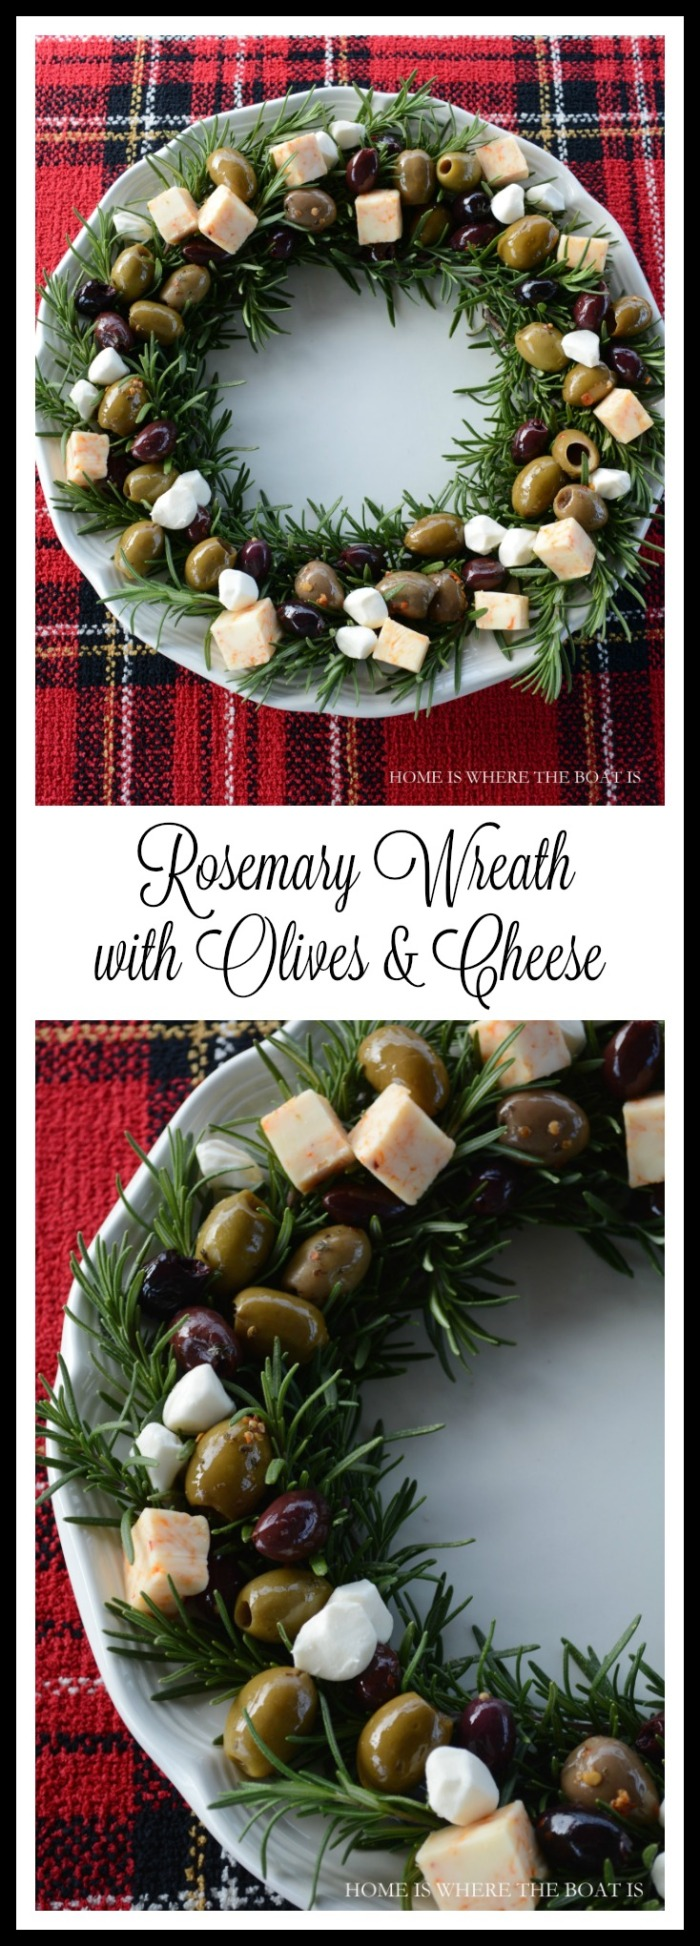 Rosemary Wreath with Olives & Cheese